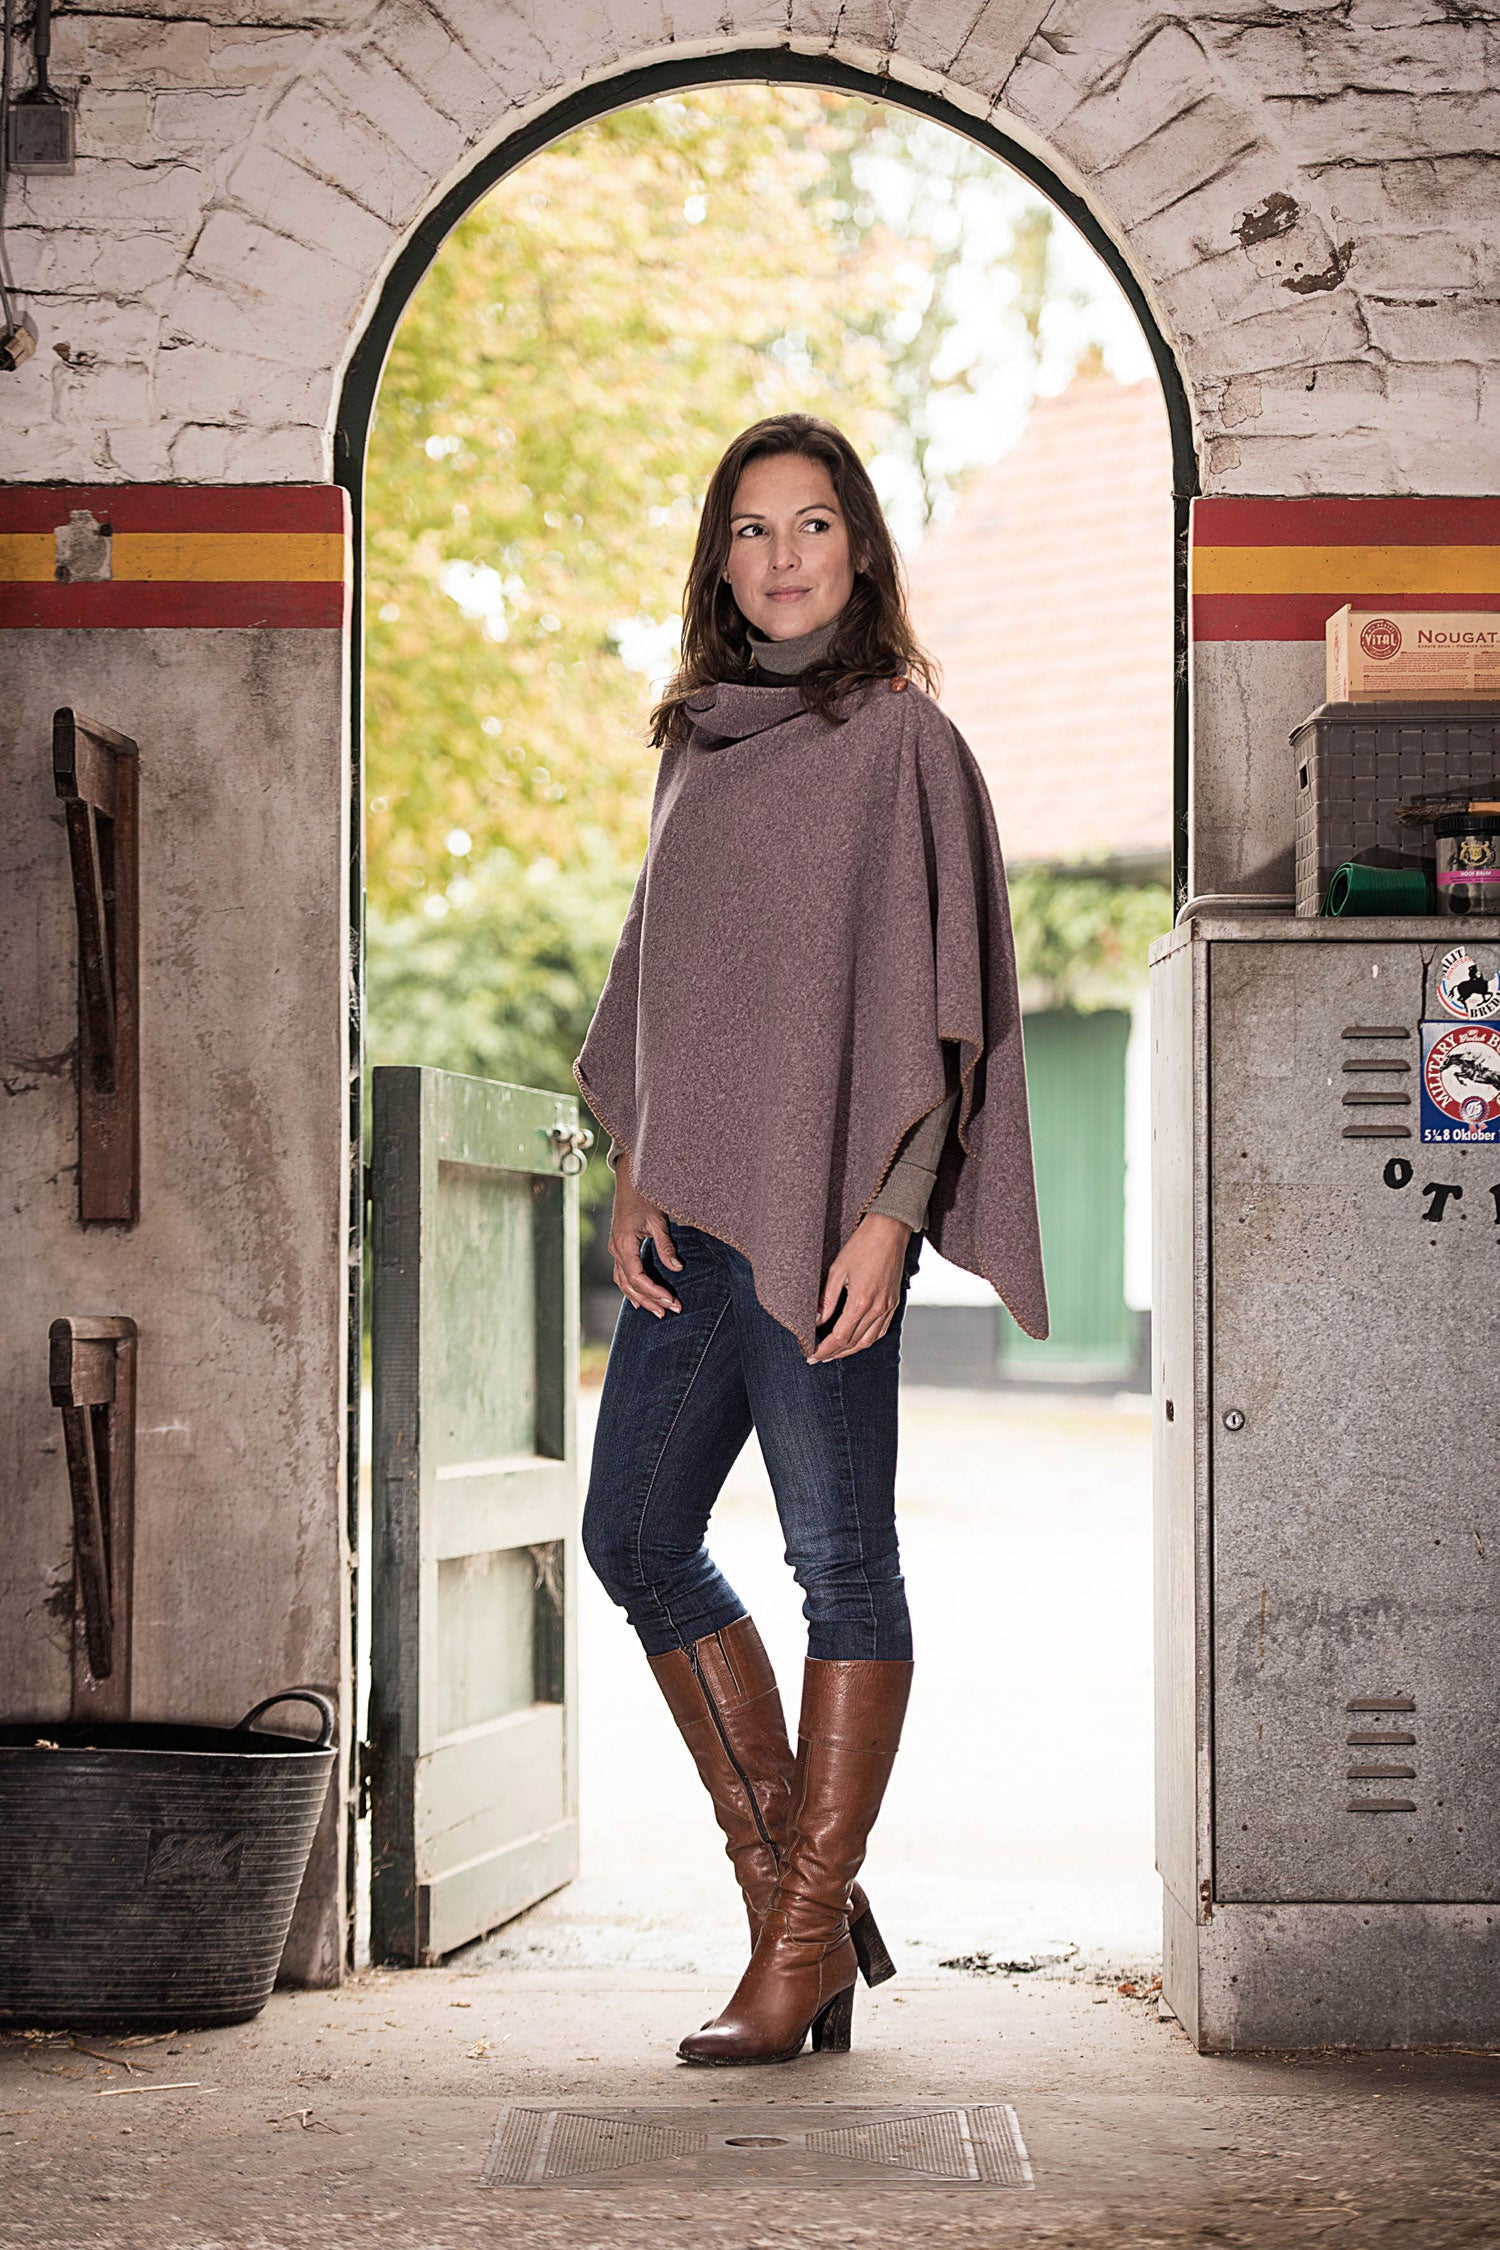 Baleno Fleece poncho in heather